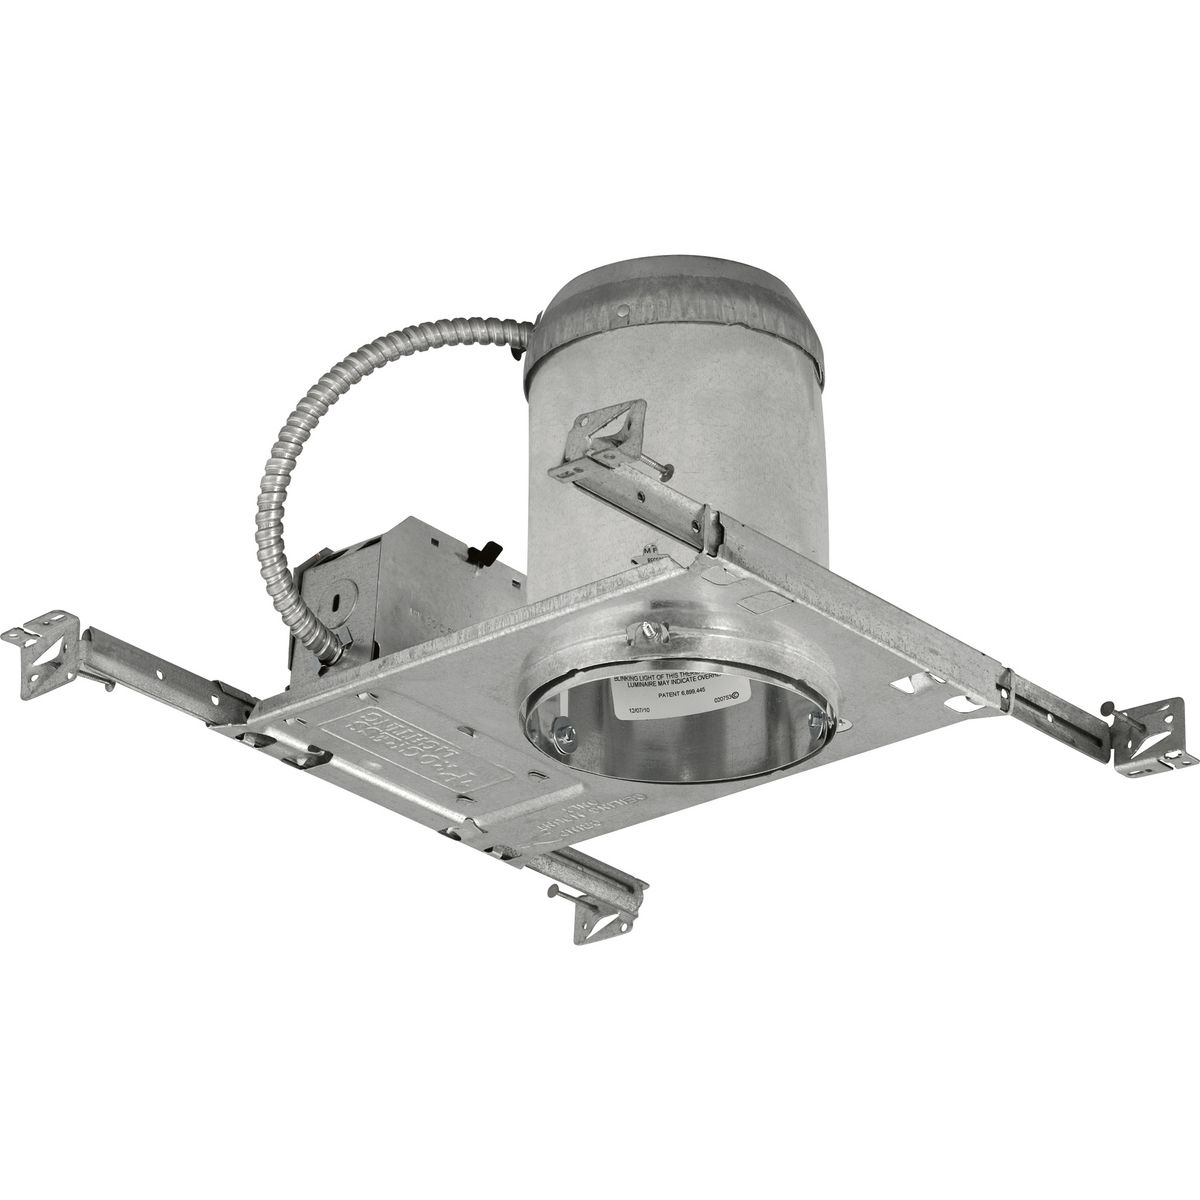 PROP85-TG 5 INCH NOMINAL APERTURE SIZE; ROUND APERTURE SHAPE; NON INSULATED CEILING; 5 1/4 INCH CEILING OPENING SIZE; REMODEL INSTALLATION; GALVANIZED STEEL HOUSING; PRE WIRED WITH 1/2 INCH, 3/4 INCH KNOCKOUT, ROMEX CLAMP JUNCTION BOX; HEIGHT 7 1/2 INCH, PROGRESS